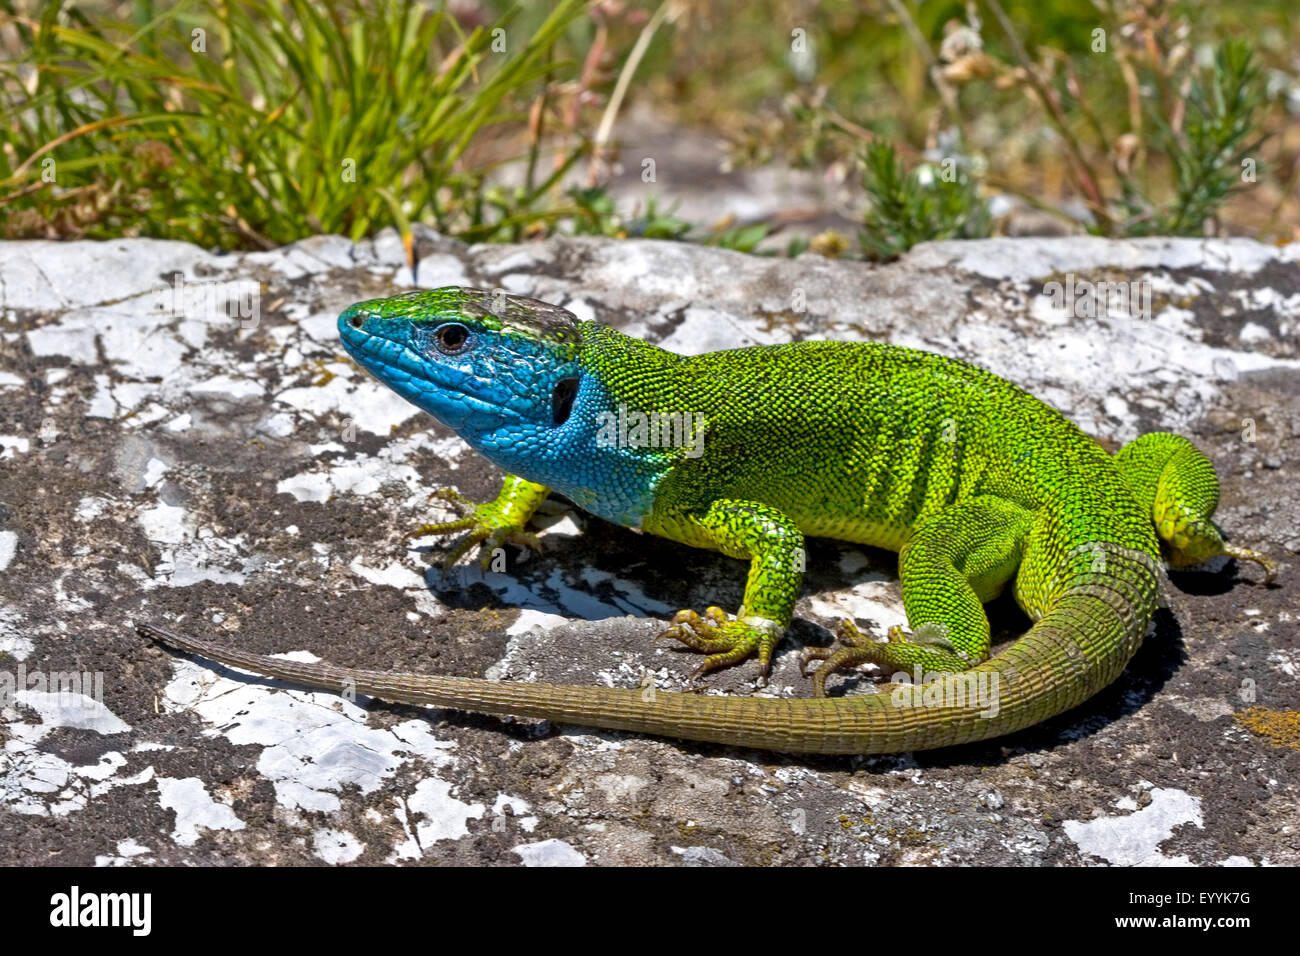 Eastern Green Lizard, European green lizard, Emerald lizard ...